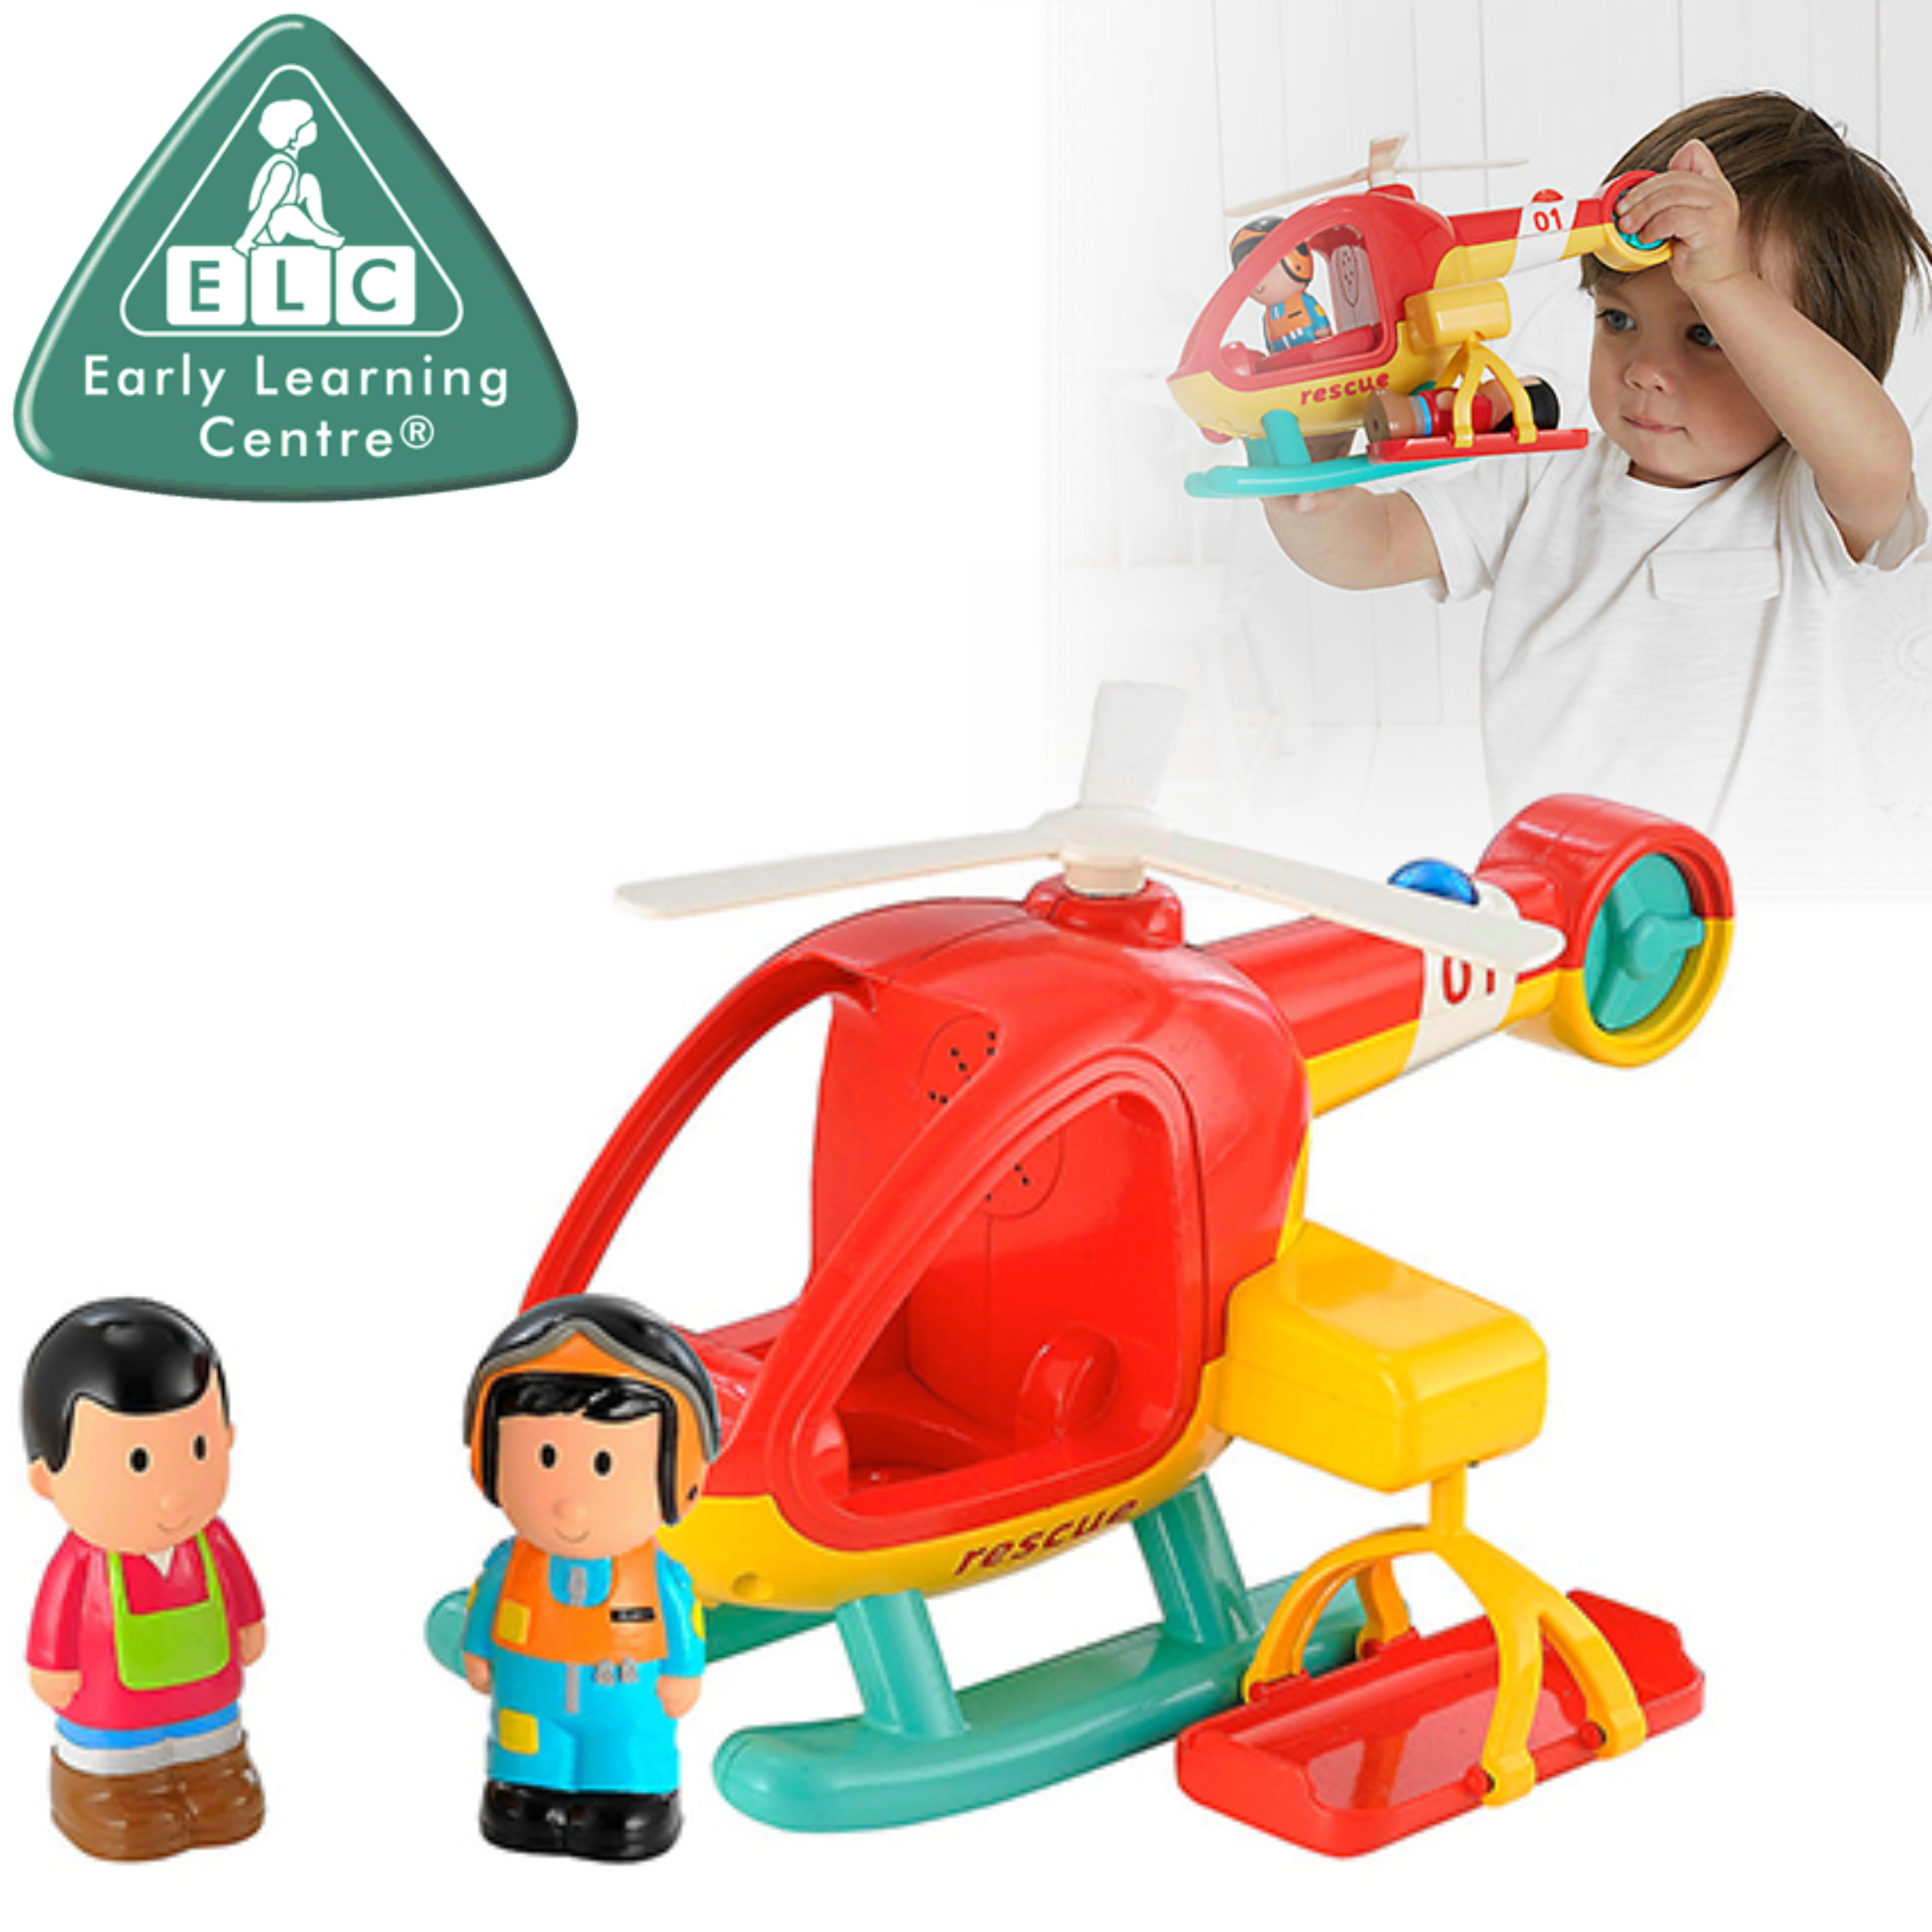 Early Learning Centre Happy Land Helicopter | Baby/ Kids Fun Toy With Light & Sound | +18 Months